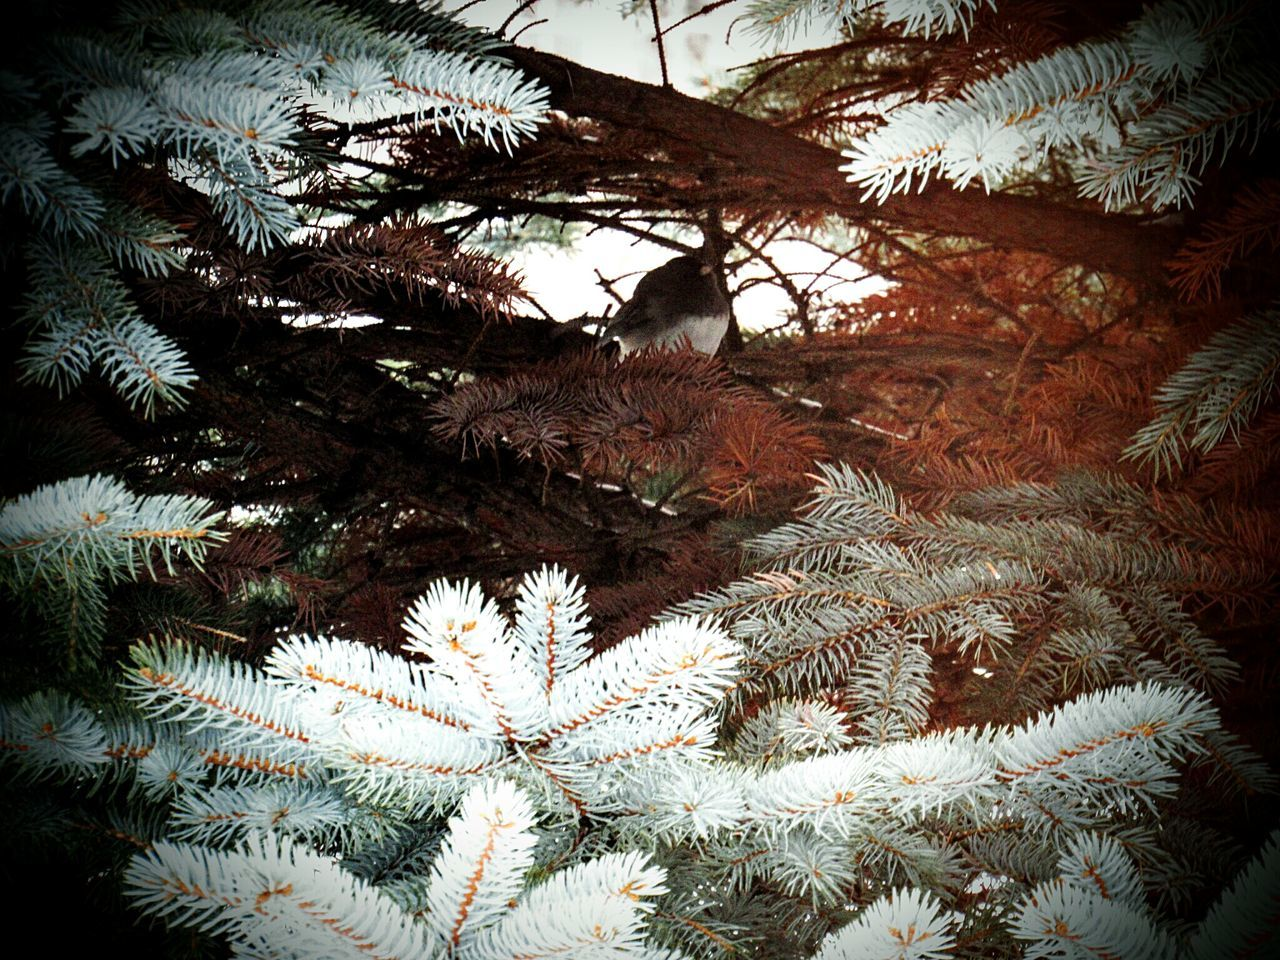 tree, christmas, christmas tree, growth, no people, celebration, pine tree, close-up, nature, branch, day, hanging, outdoors, winter, spruce tree